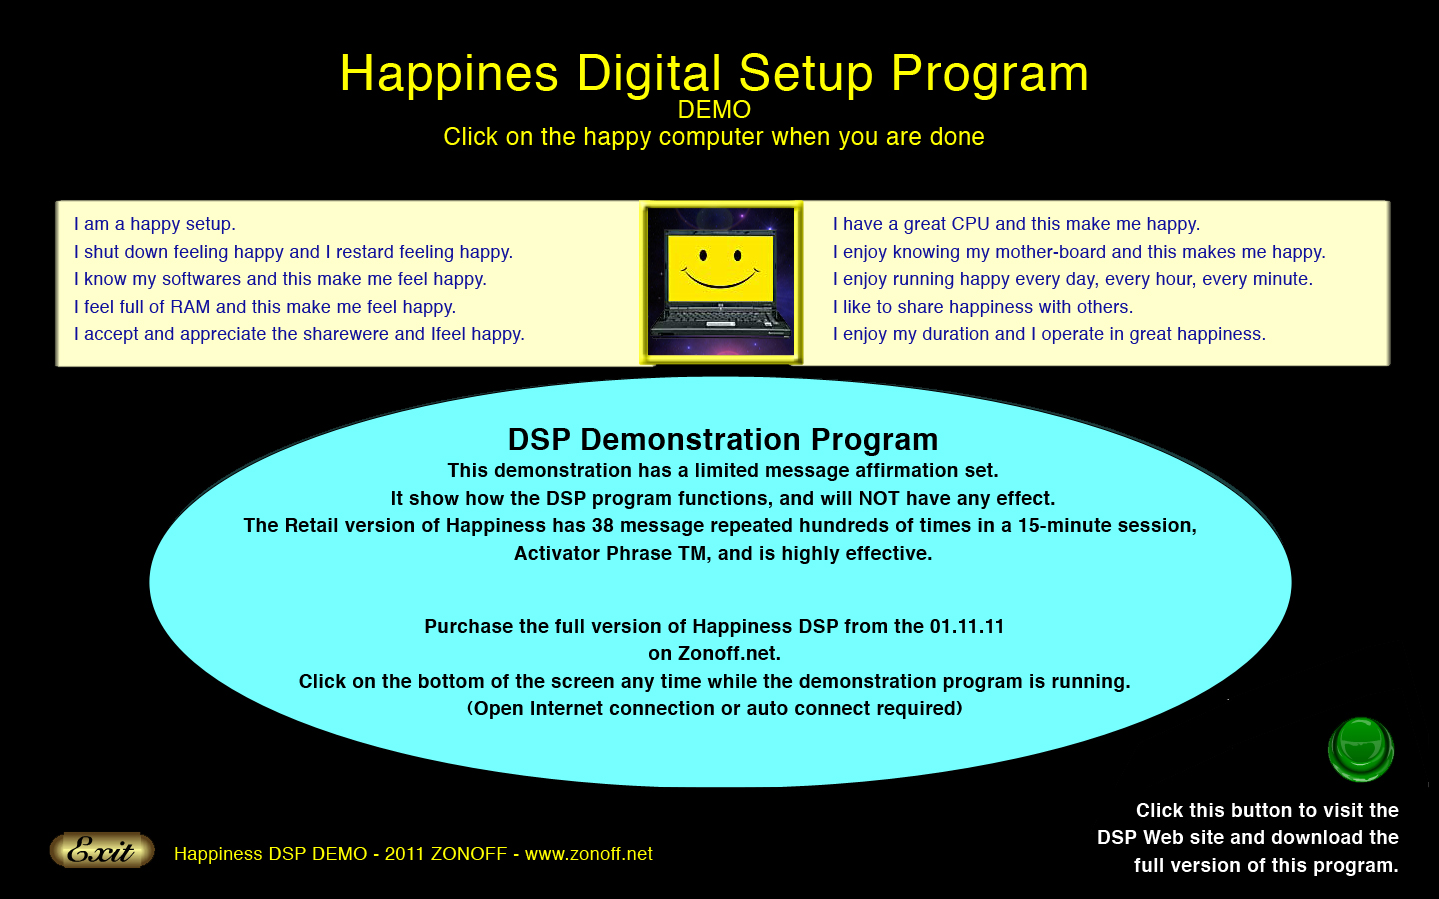 Demo-HappynessDigital_HD